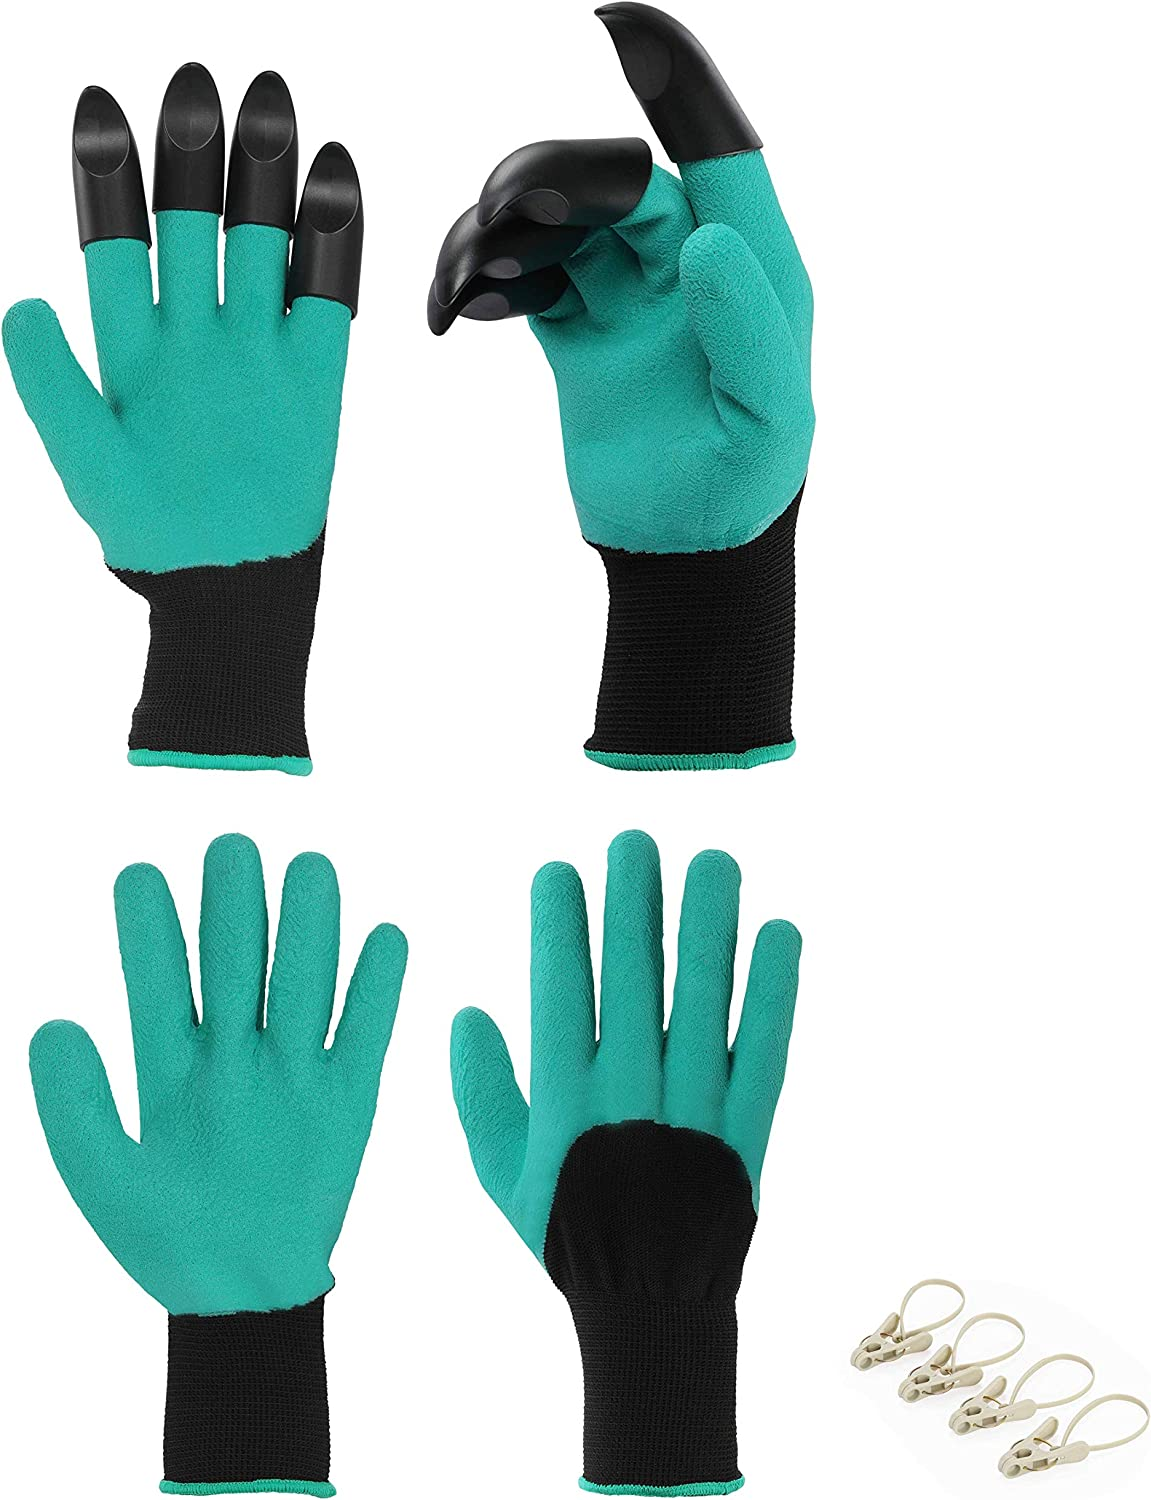 Planting Gloves For Easy Digging, 2 Pairs Breathable Garden Gloves With Fingertips Claw (Claw 1 Pair+ Non Claw 1 Pair) Plus 4 Clips - Best Gardening Gifts for Women and Men